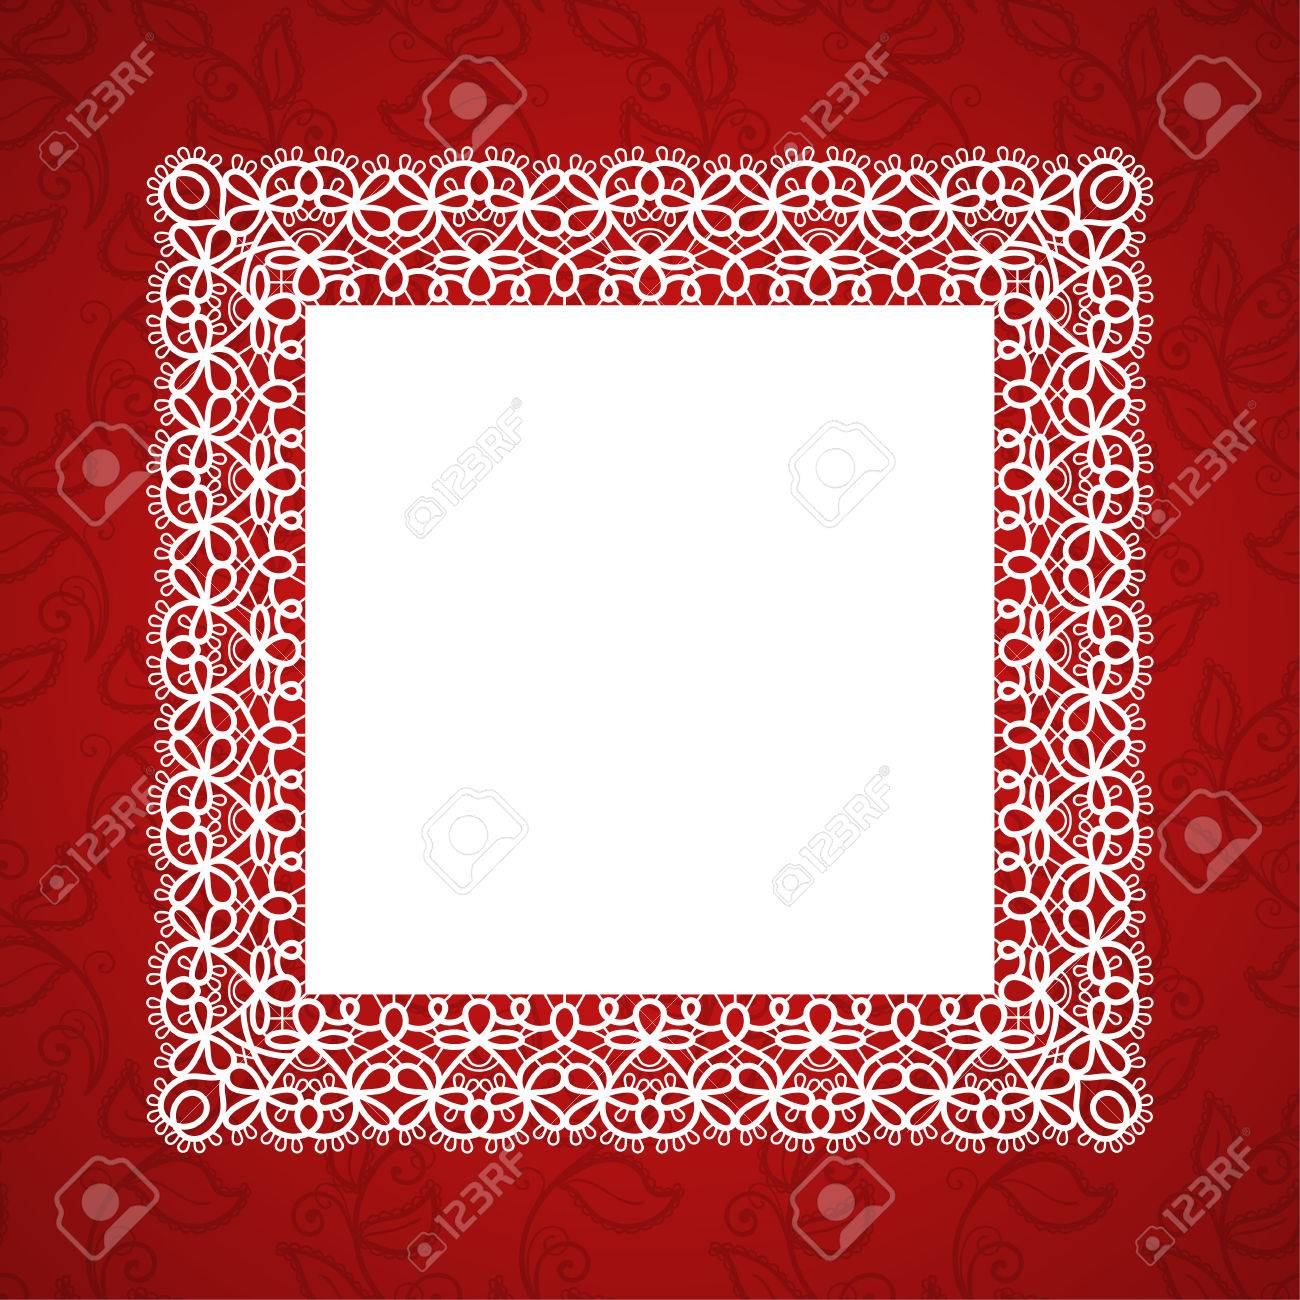 Square Lace Frame With A Place For Text. Background For Wedding ...